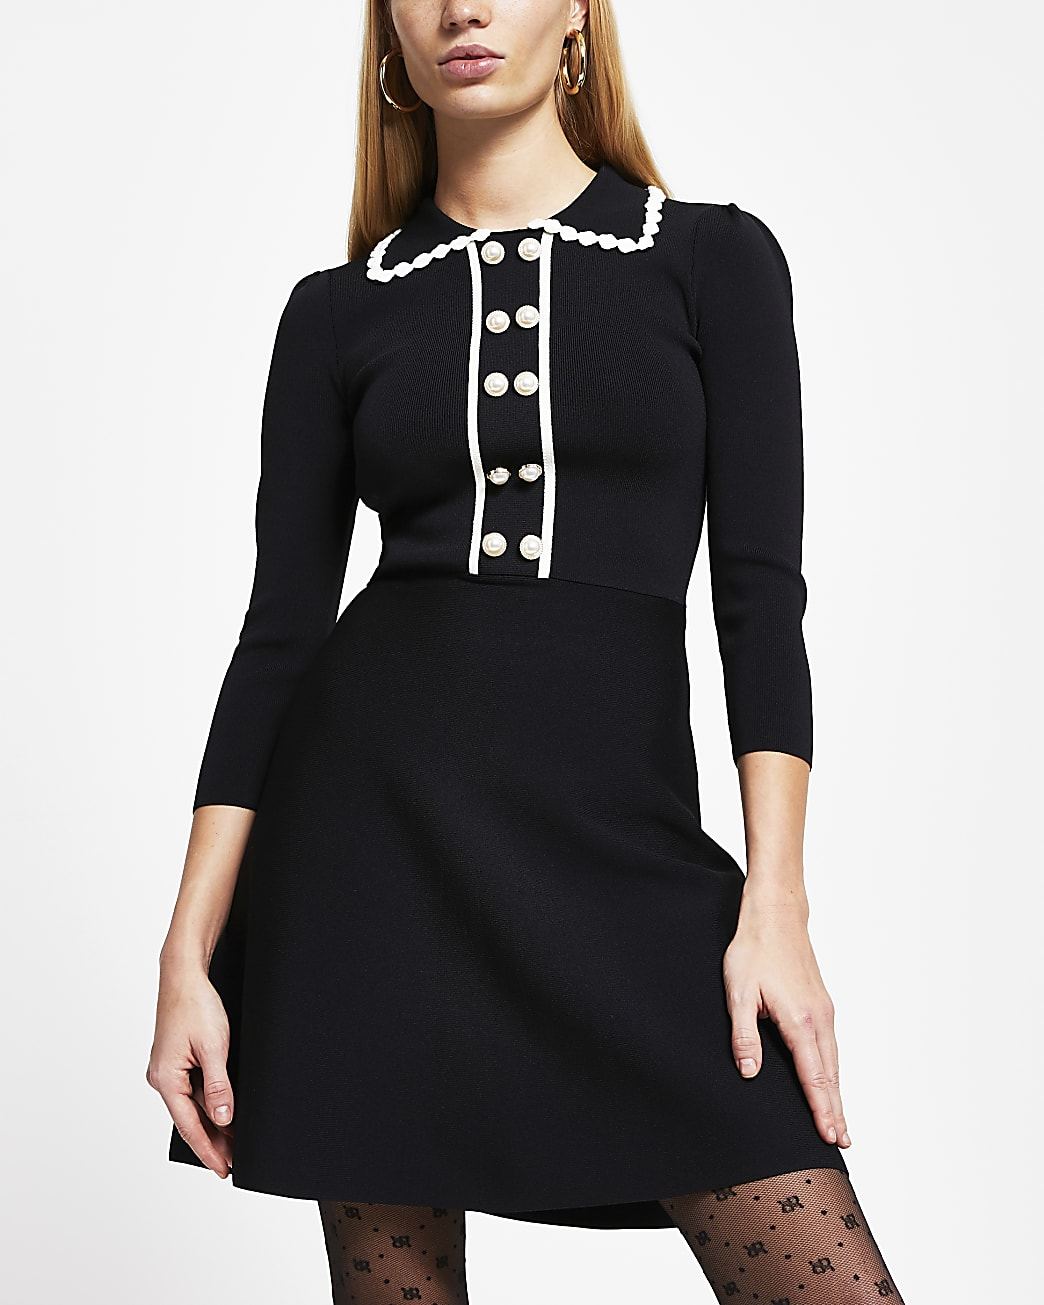 Black polo neck knitted pearl button dress